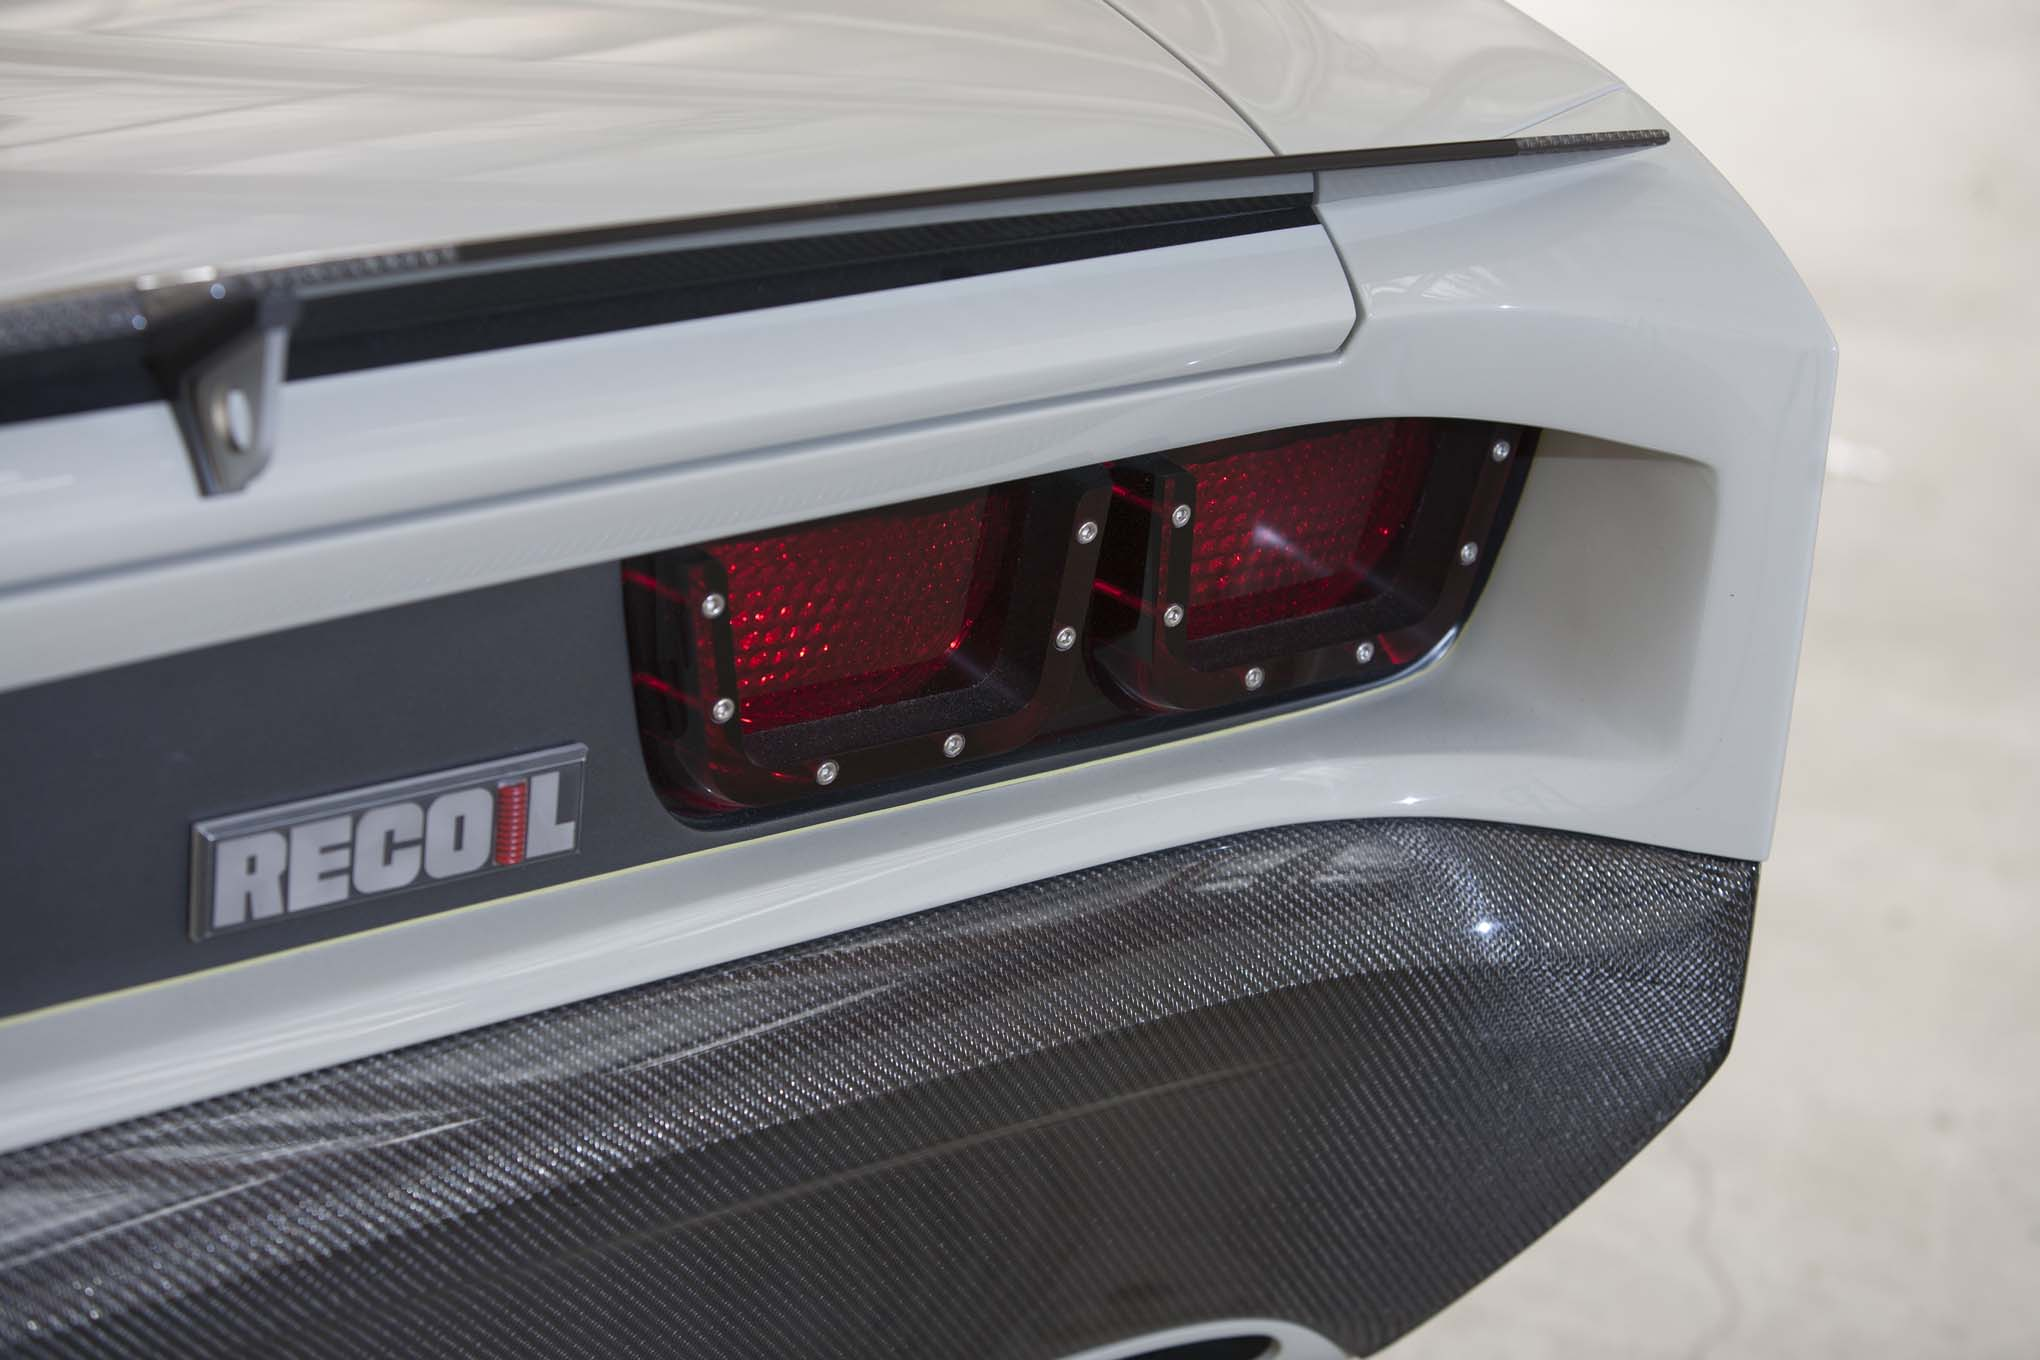 AM Hot Rod Glass taillights fit into a custom tailpanel. Note the gap between the body and the carbon-fiber bumper.